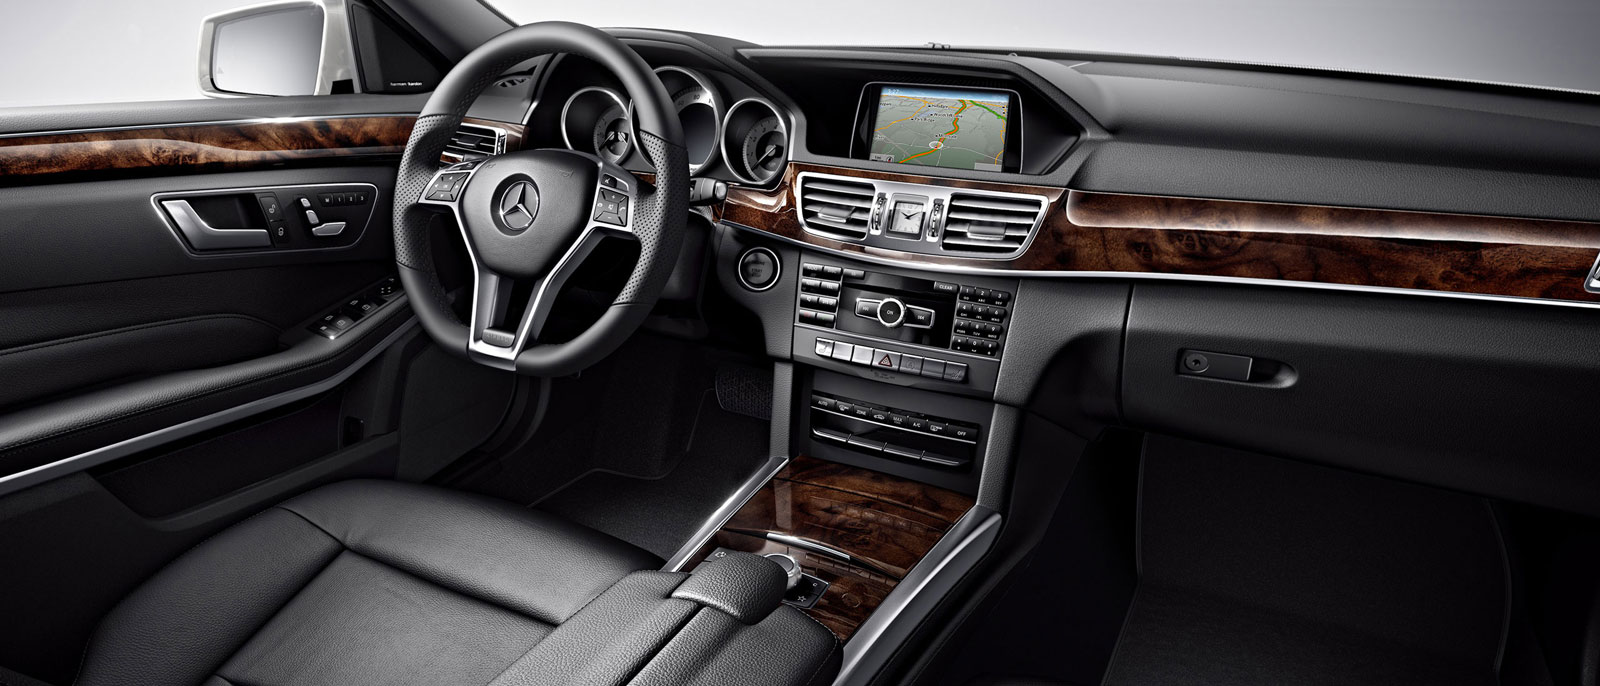 Enjoy Pure Luxury with the 2016 Mercedes-Benz E400 Sedan